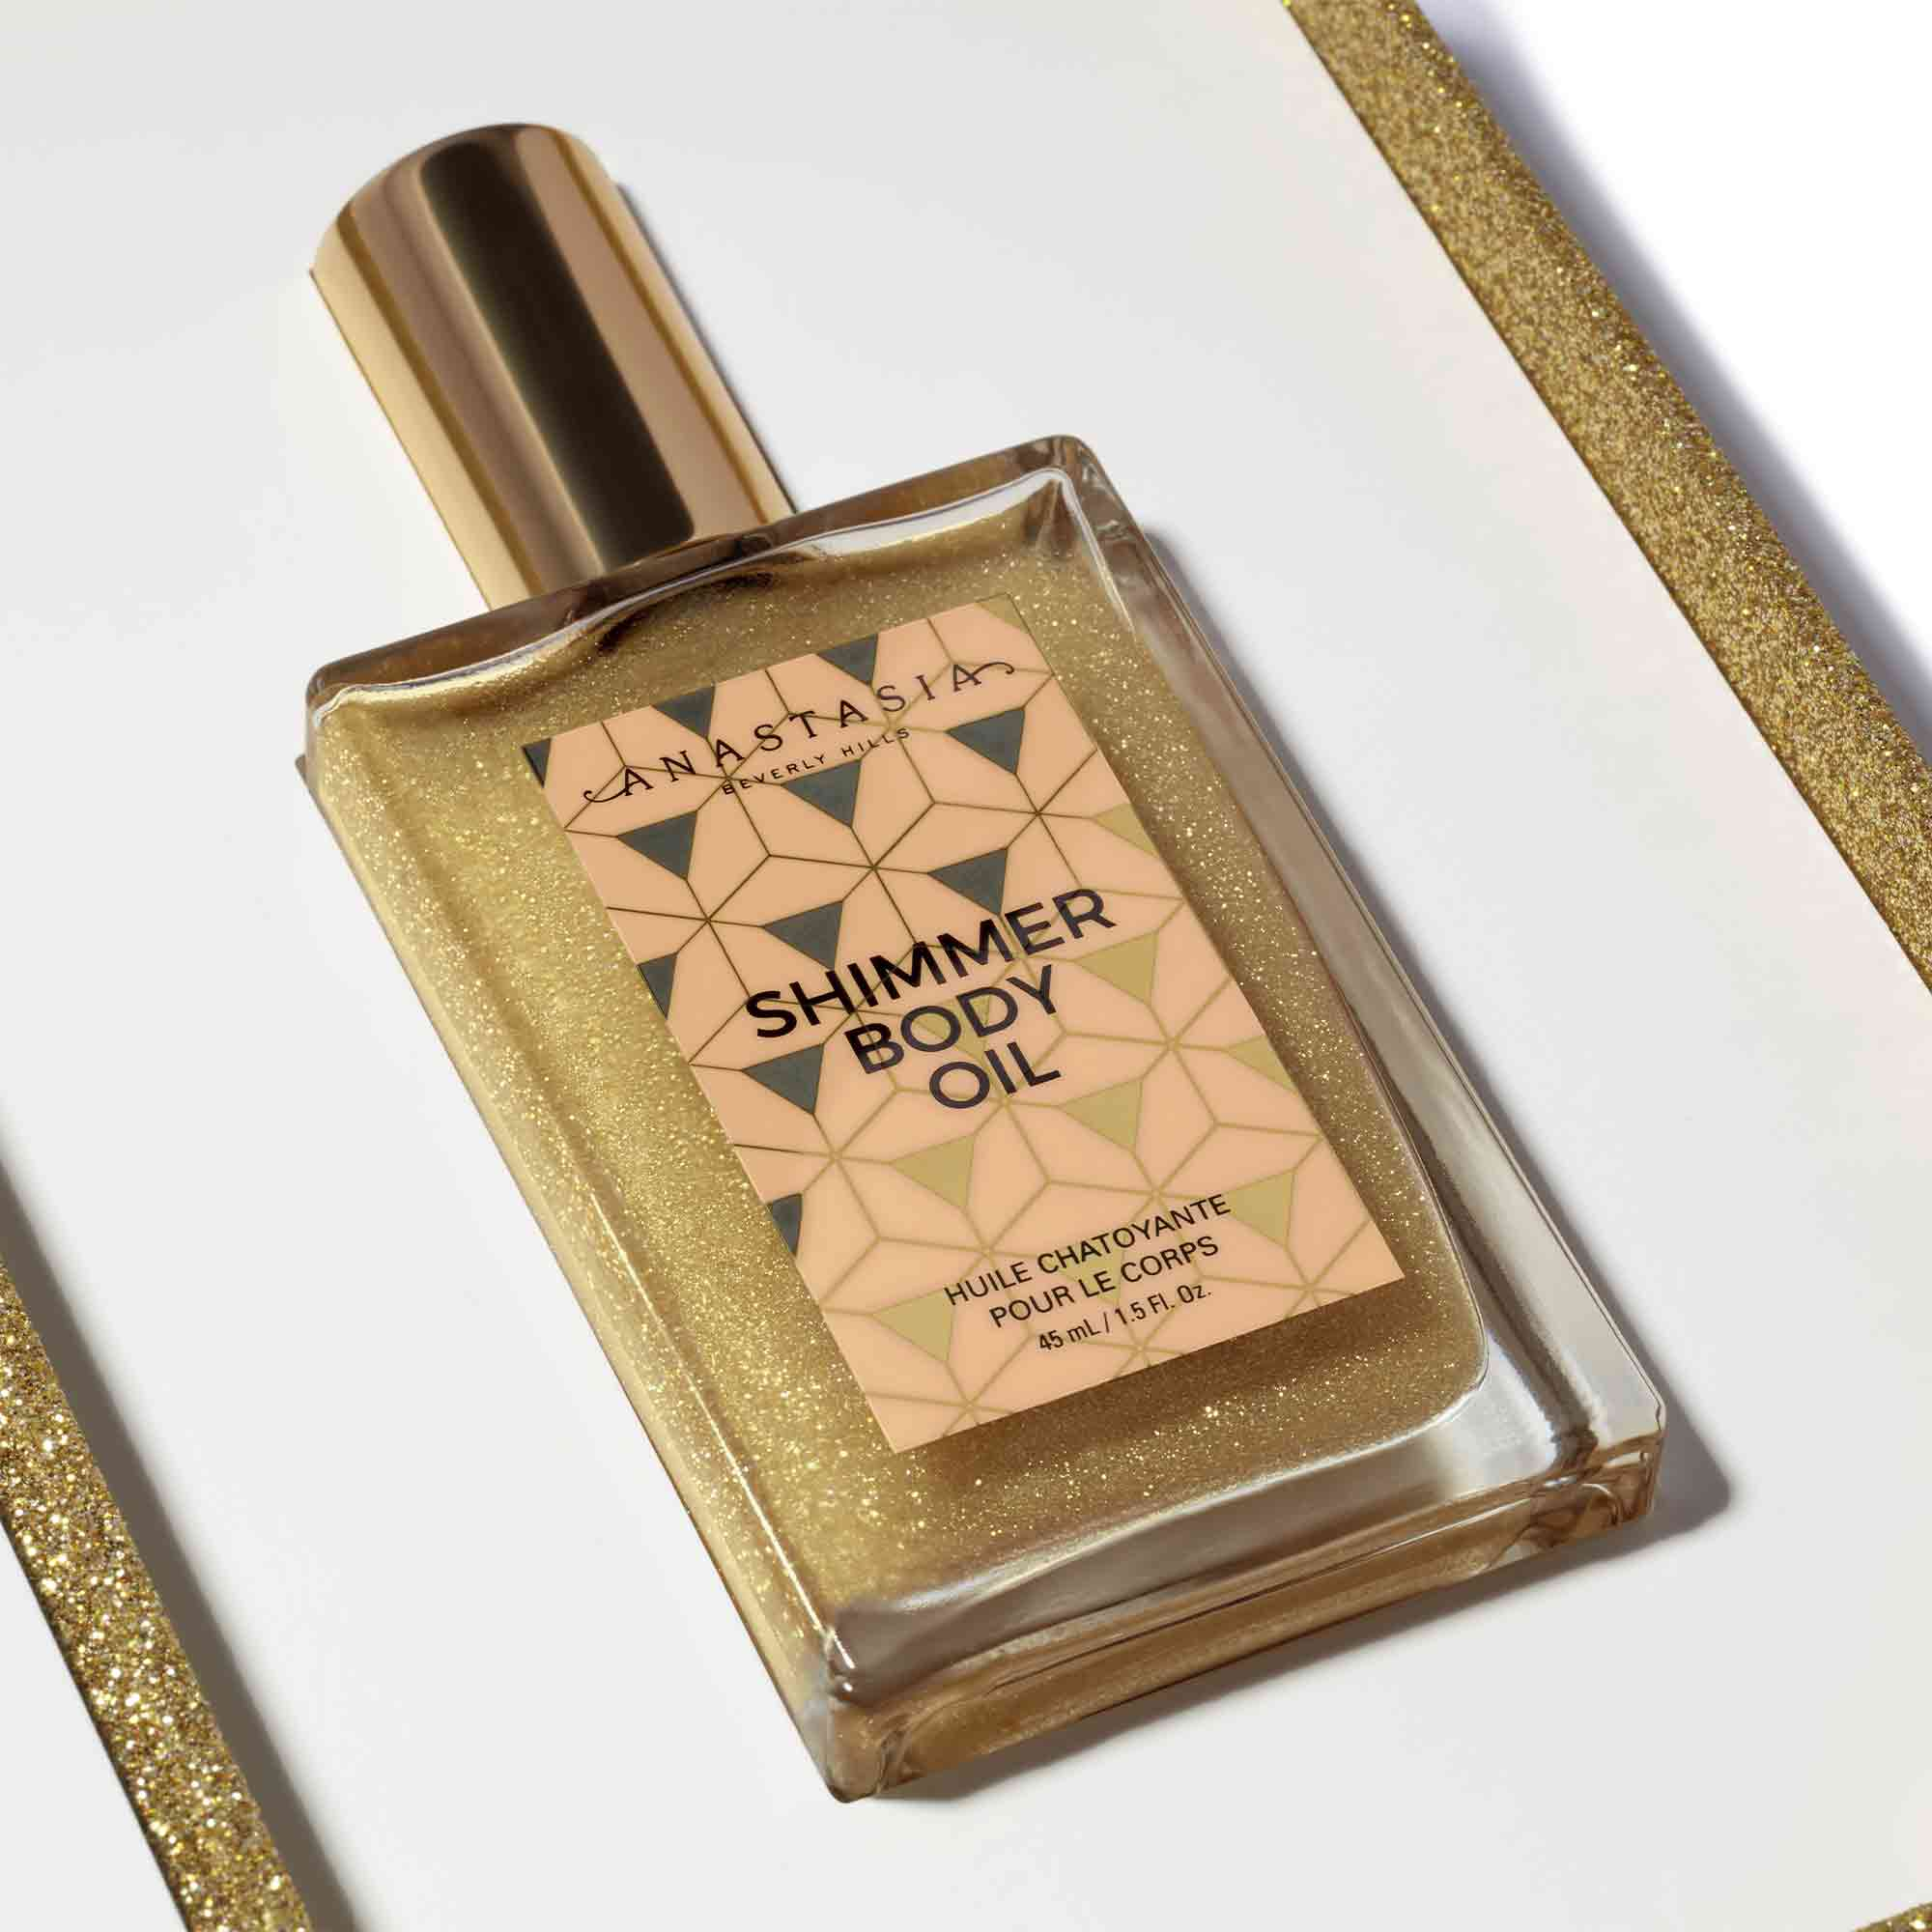 Shimmer Body Oil Launch Edition